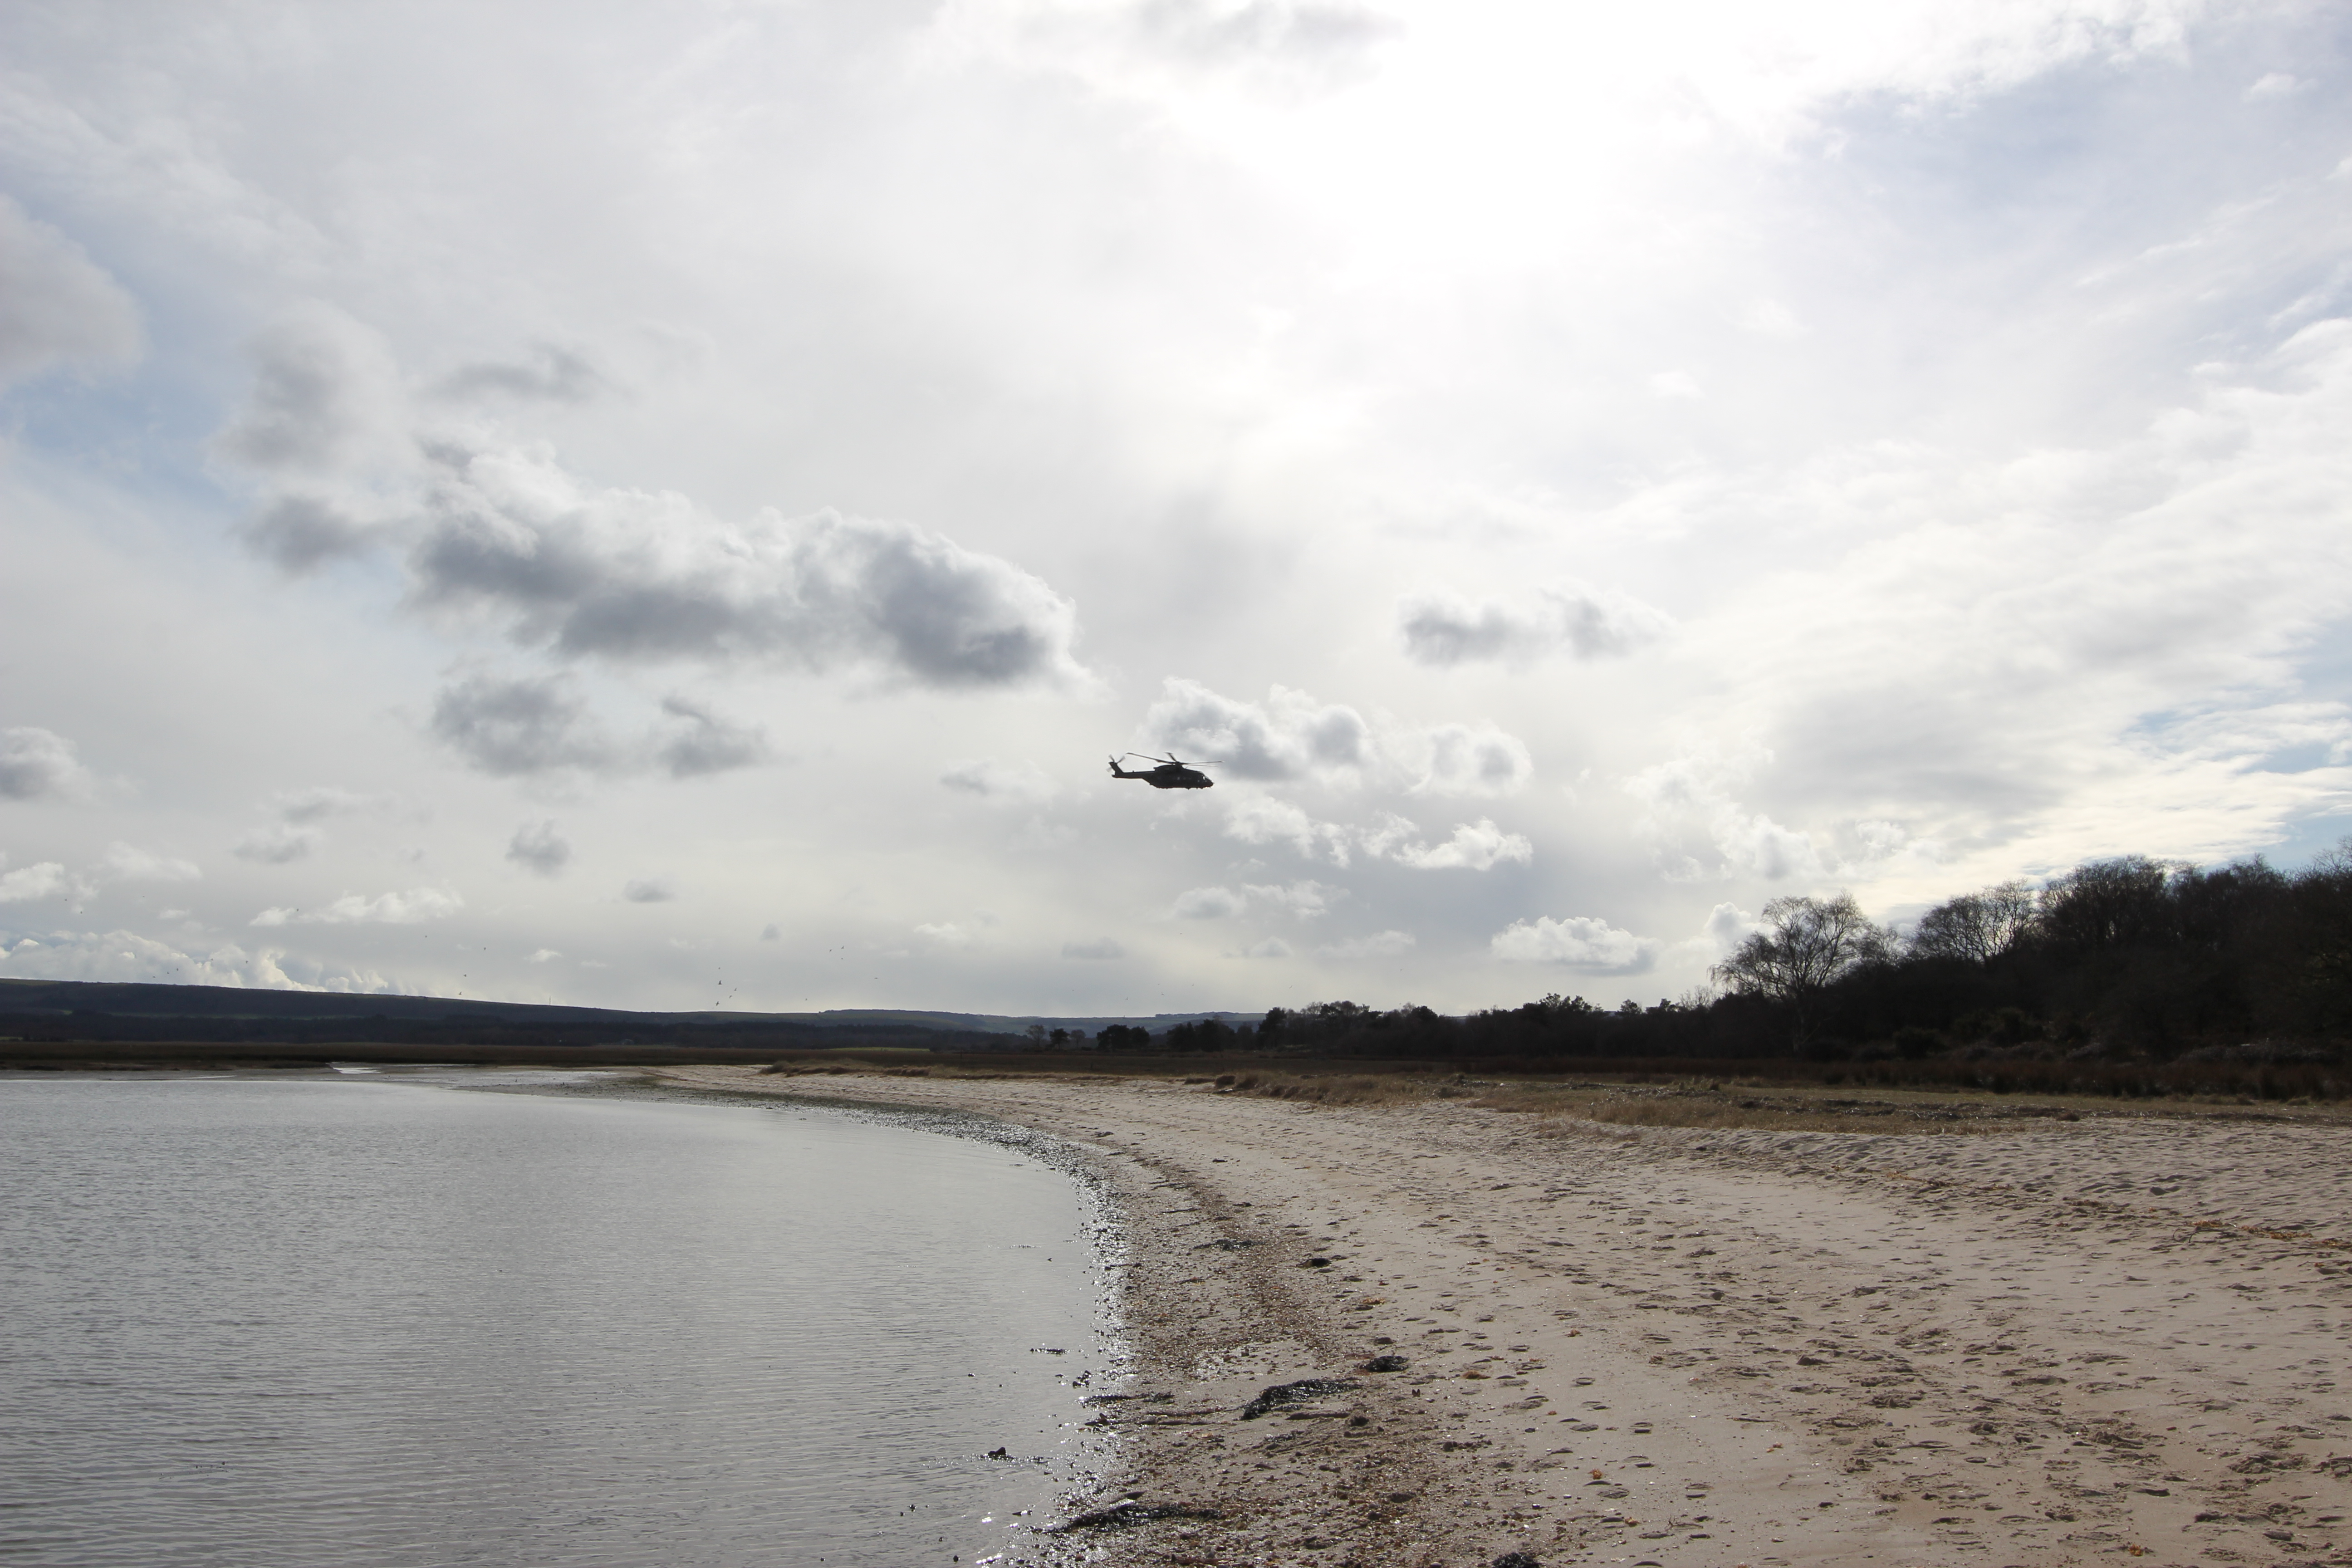 An AugustaWestland Merlin Mk 3 (or Mk 3i), near the southern spit at Shipstal in March 2016. This helicopter is probably from 846 Naval Air Squadron (NAS), as the primary customer for the Commando Helicopter Force (CHF) is The Royal Marines.